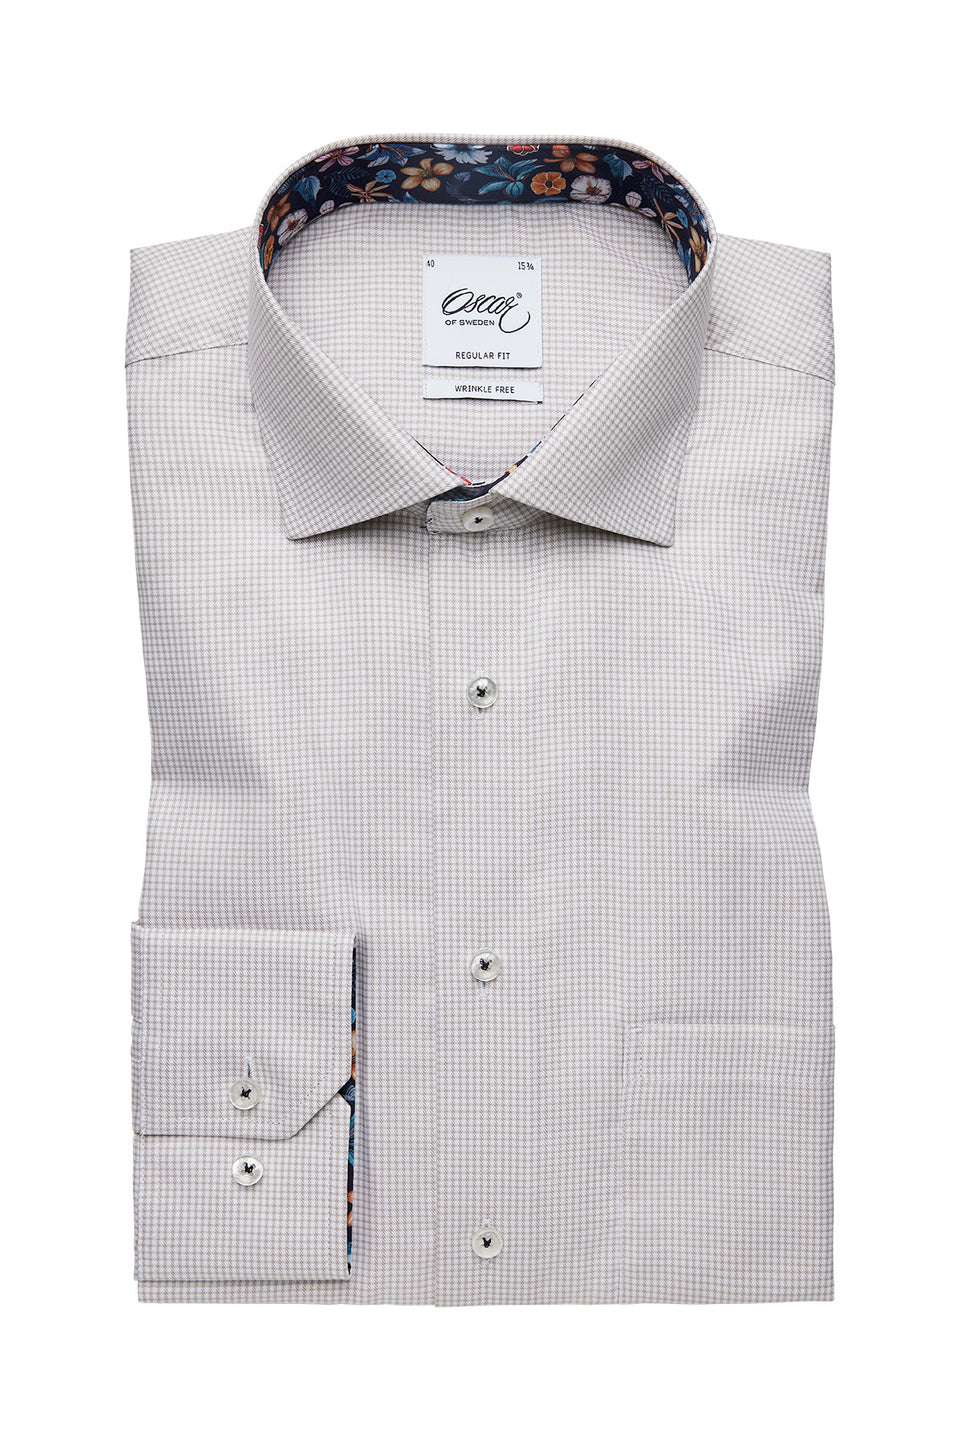 Beige checked regular fit shirt with contrast details